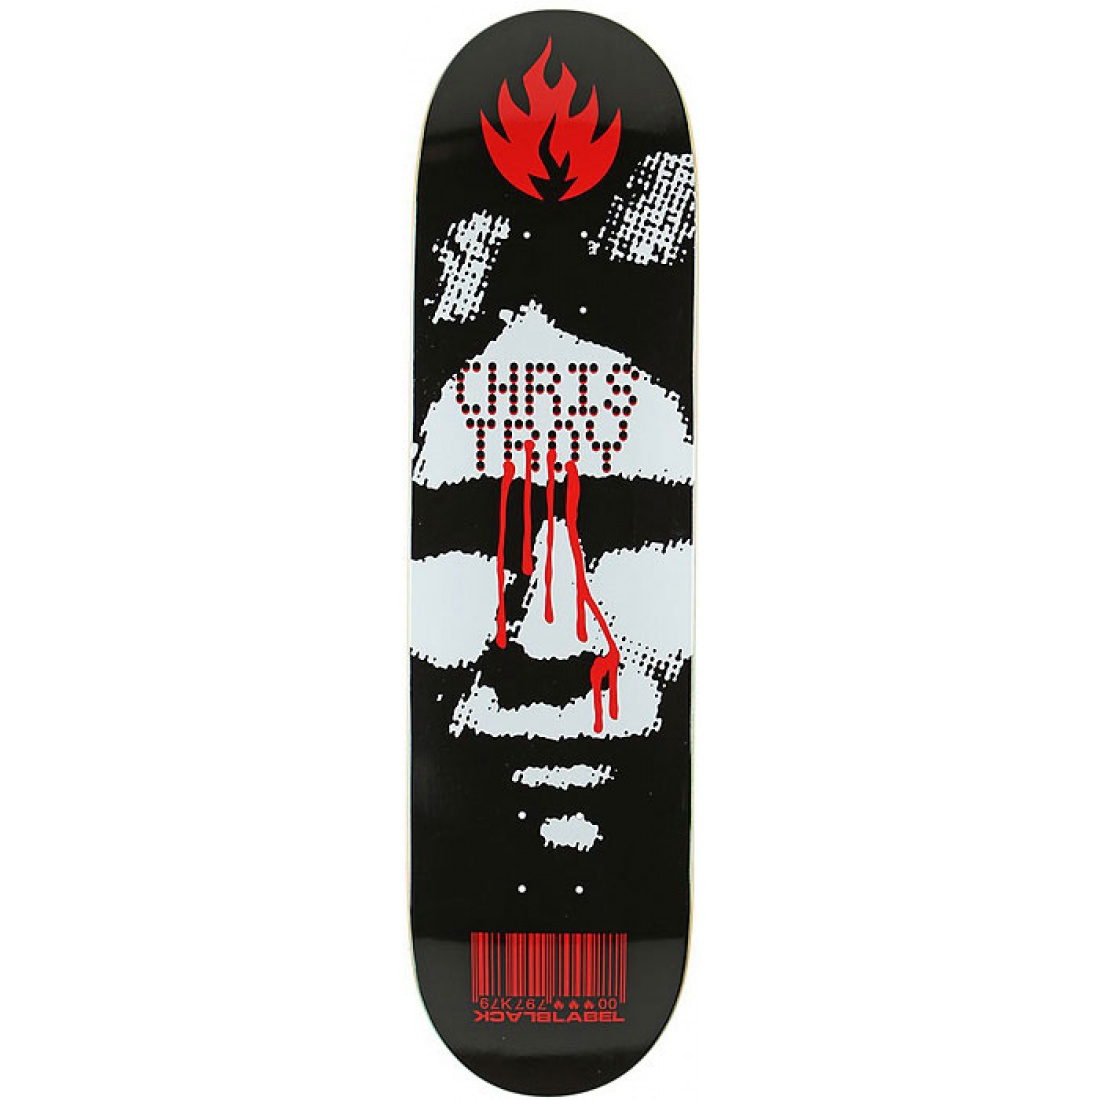 BL-Dirt Troy 8.25 Deck